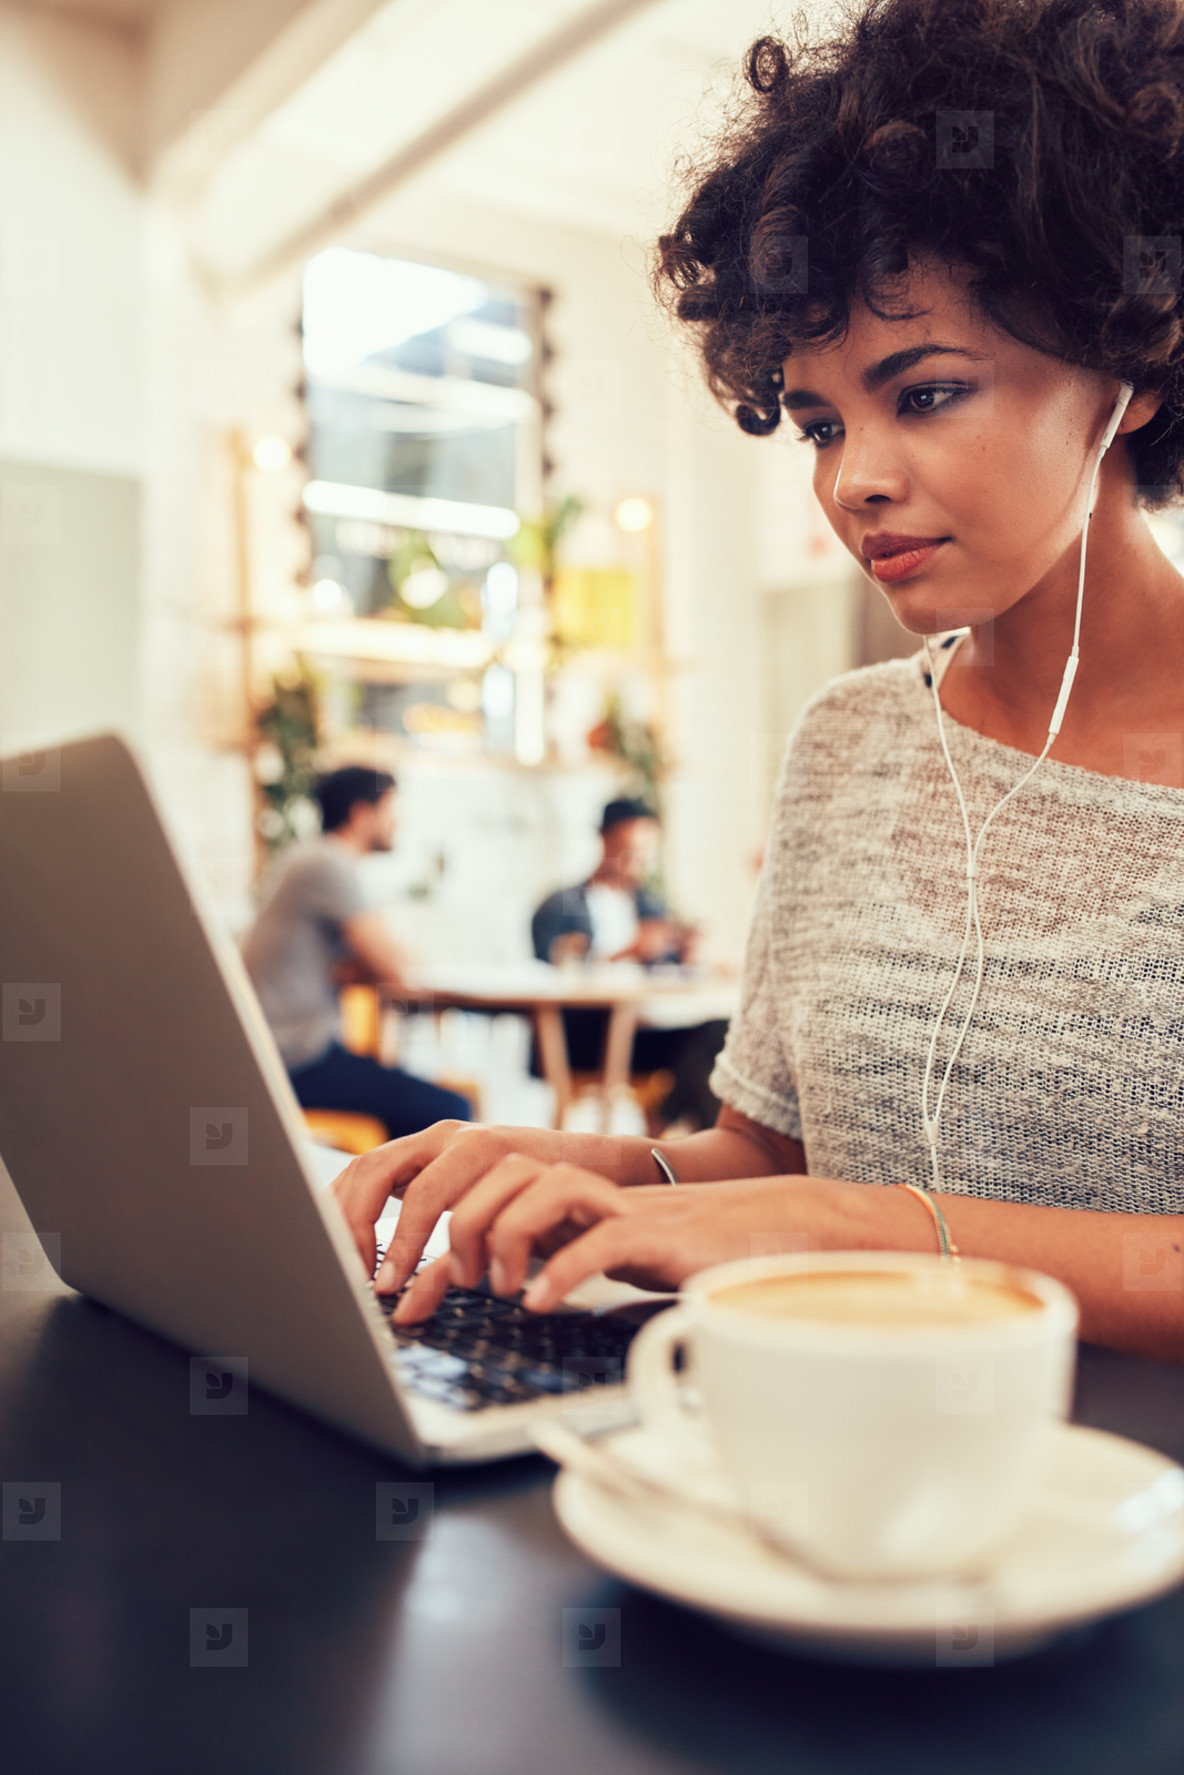 African woman at a coffee shop using laptop